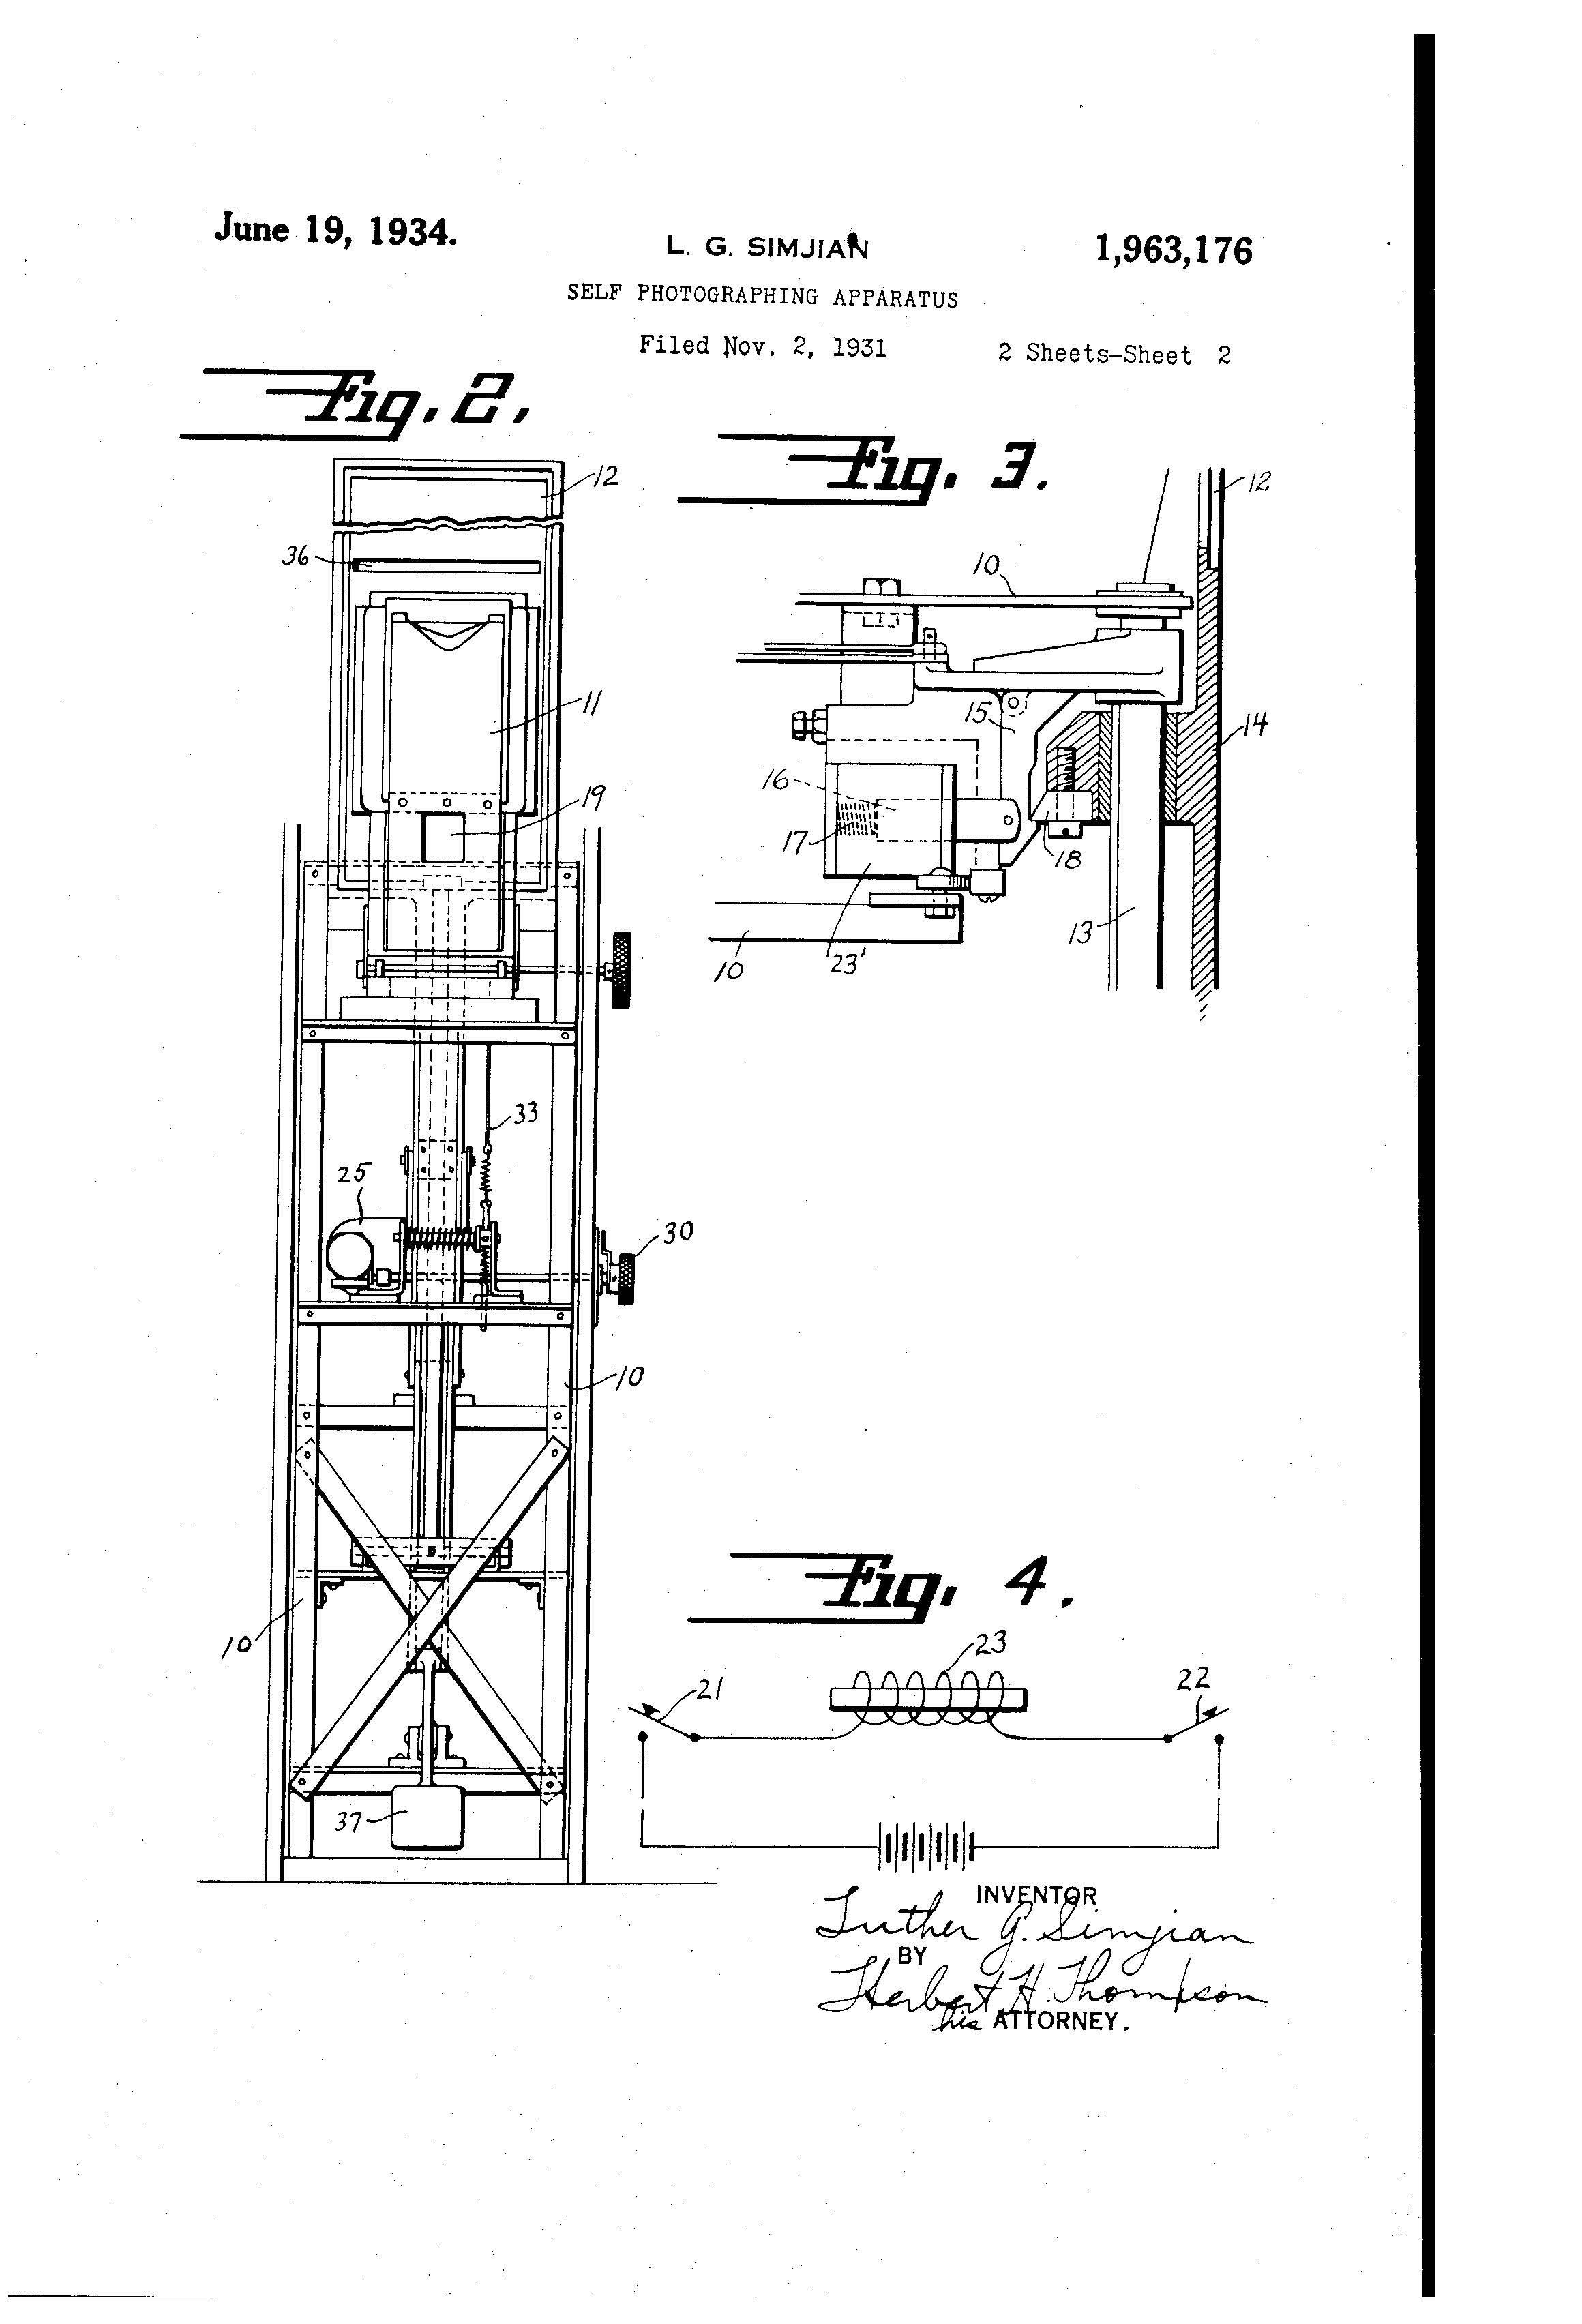 Patent Of The Day Self Photographing Apparatus